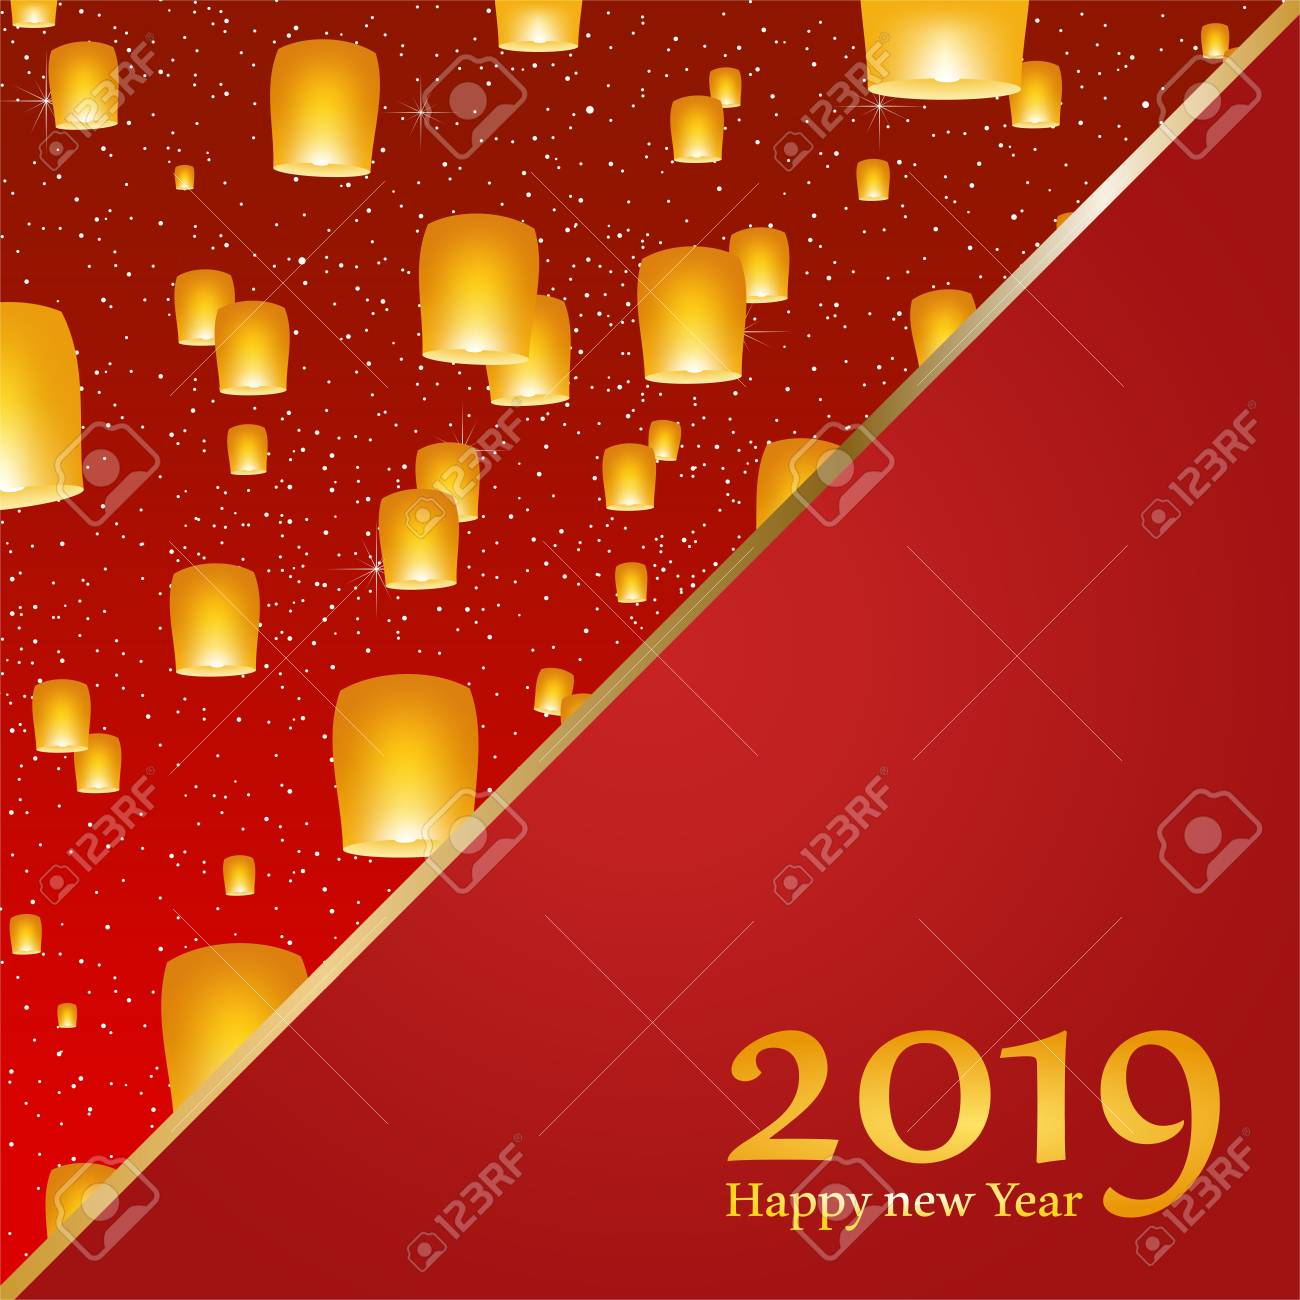 new year greetings for year 2019 with bright red background with glowing stars with yellow lights